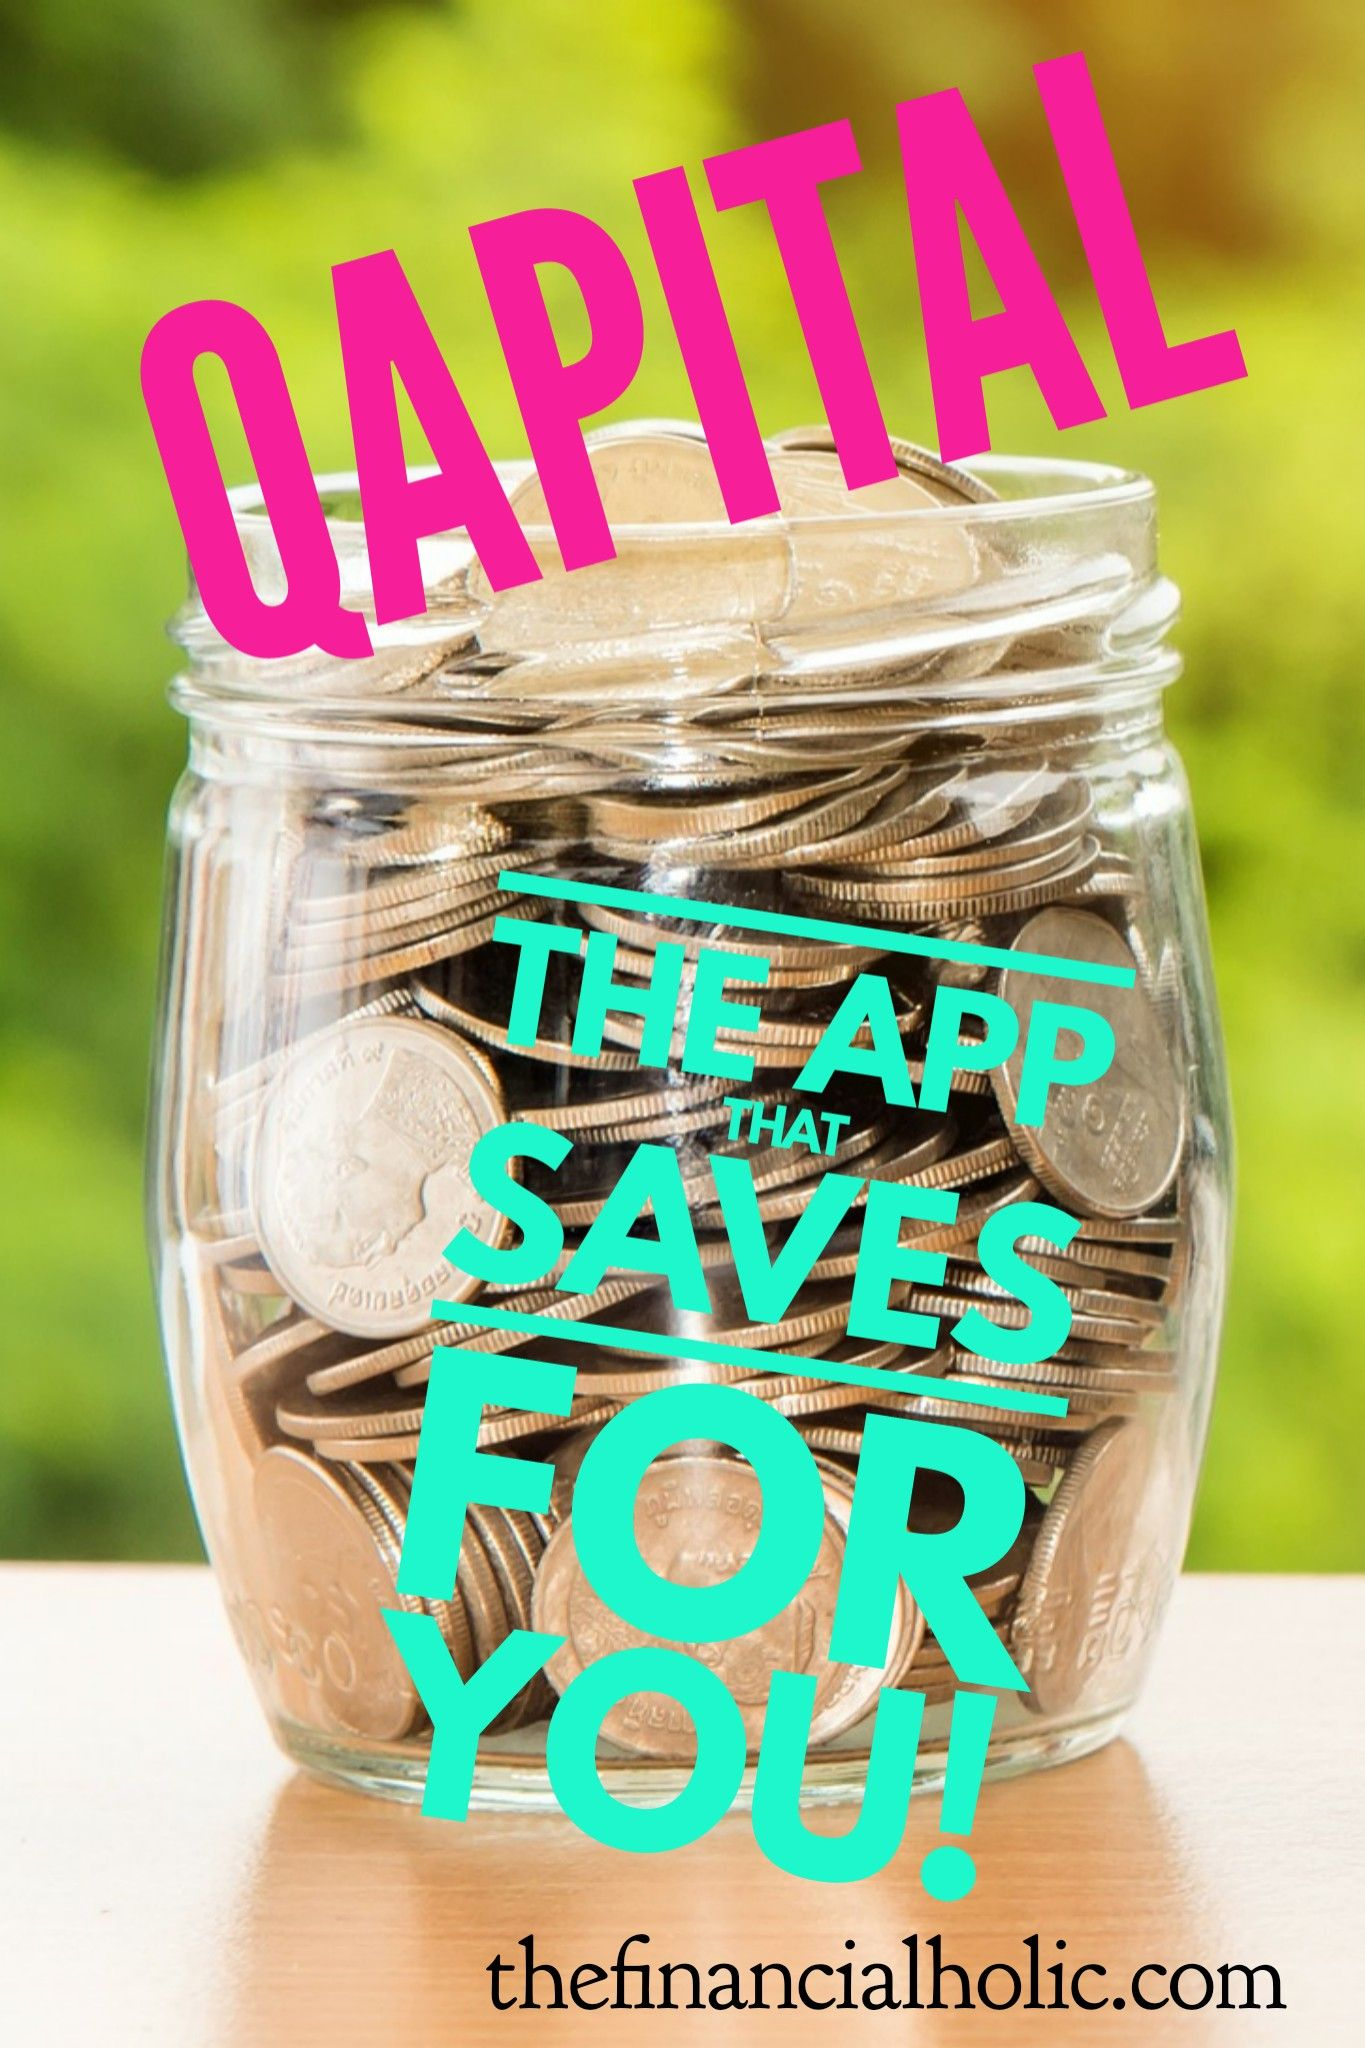 I've saved over $100 with Qapital in less than 3 months. I didn't even know I was saving!